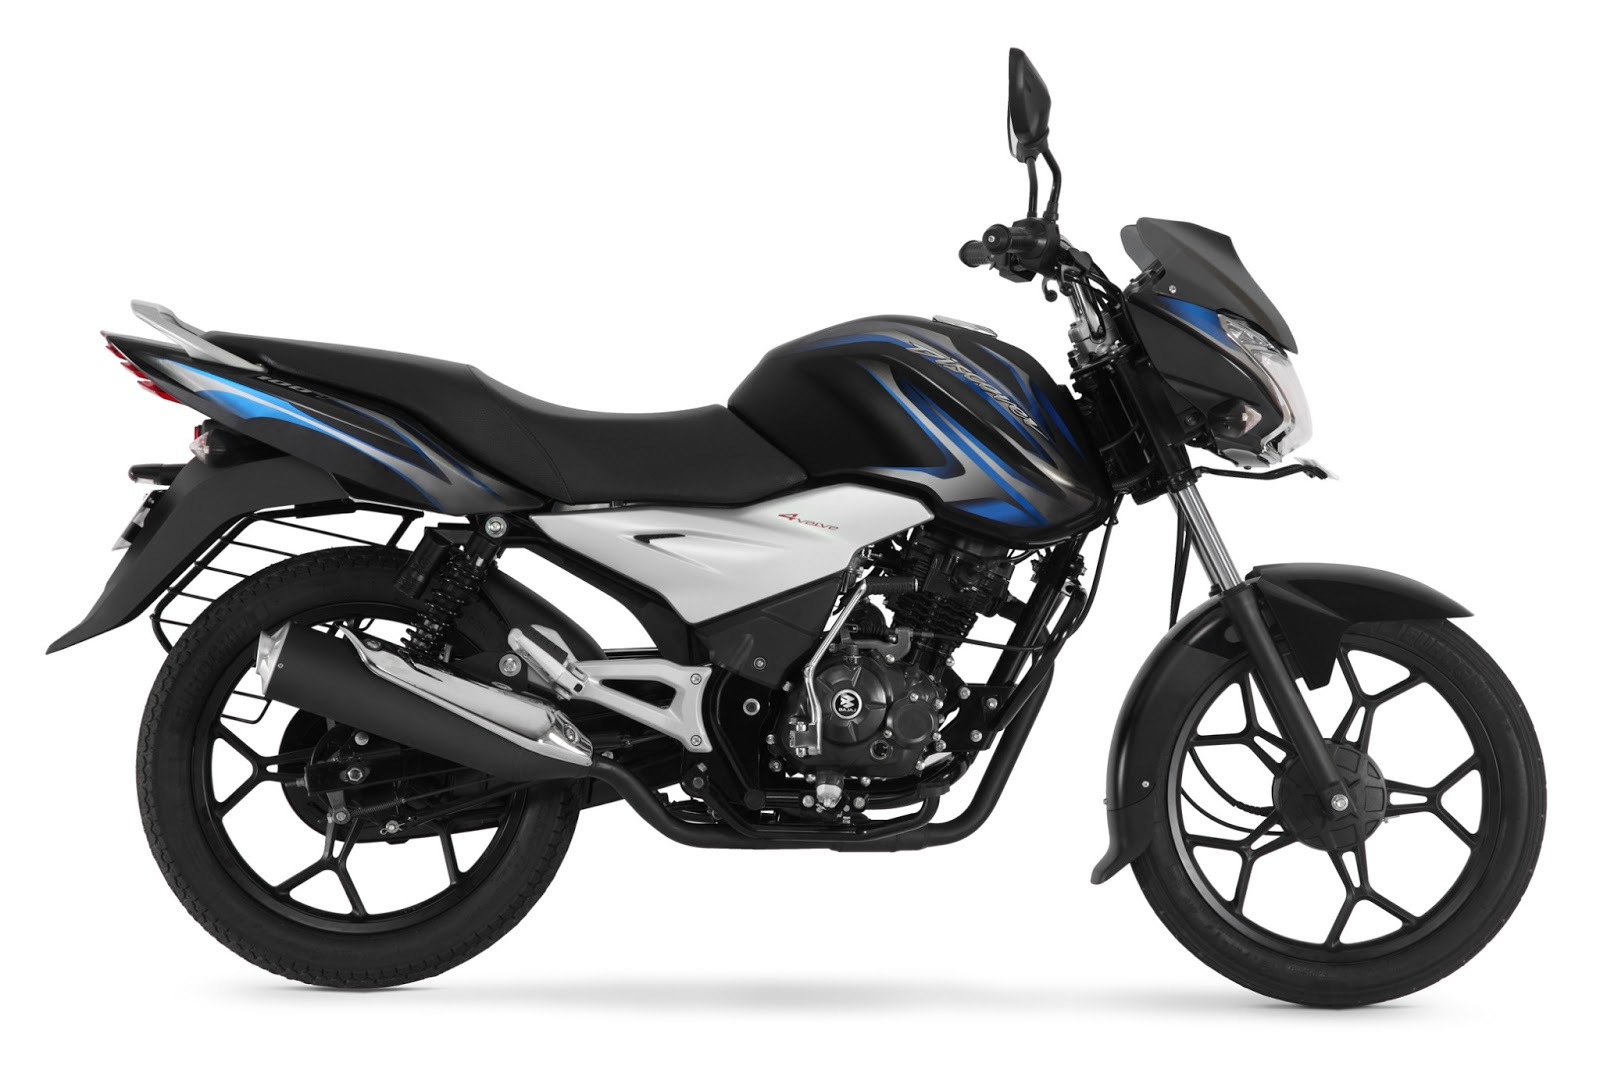 2014 Yamaha Fazer FI Version 2.0 launched in India | Price and spec ...